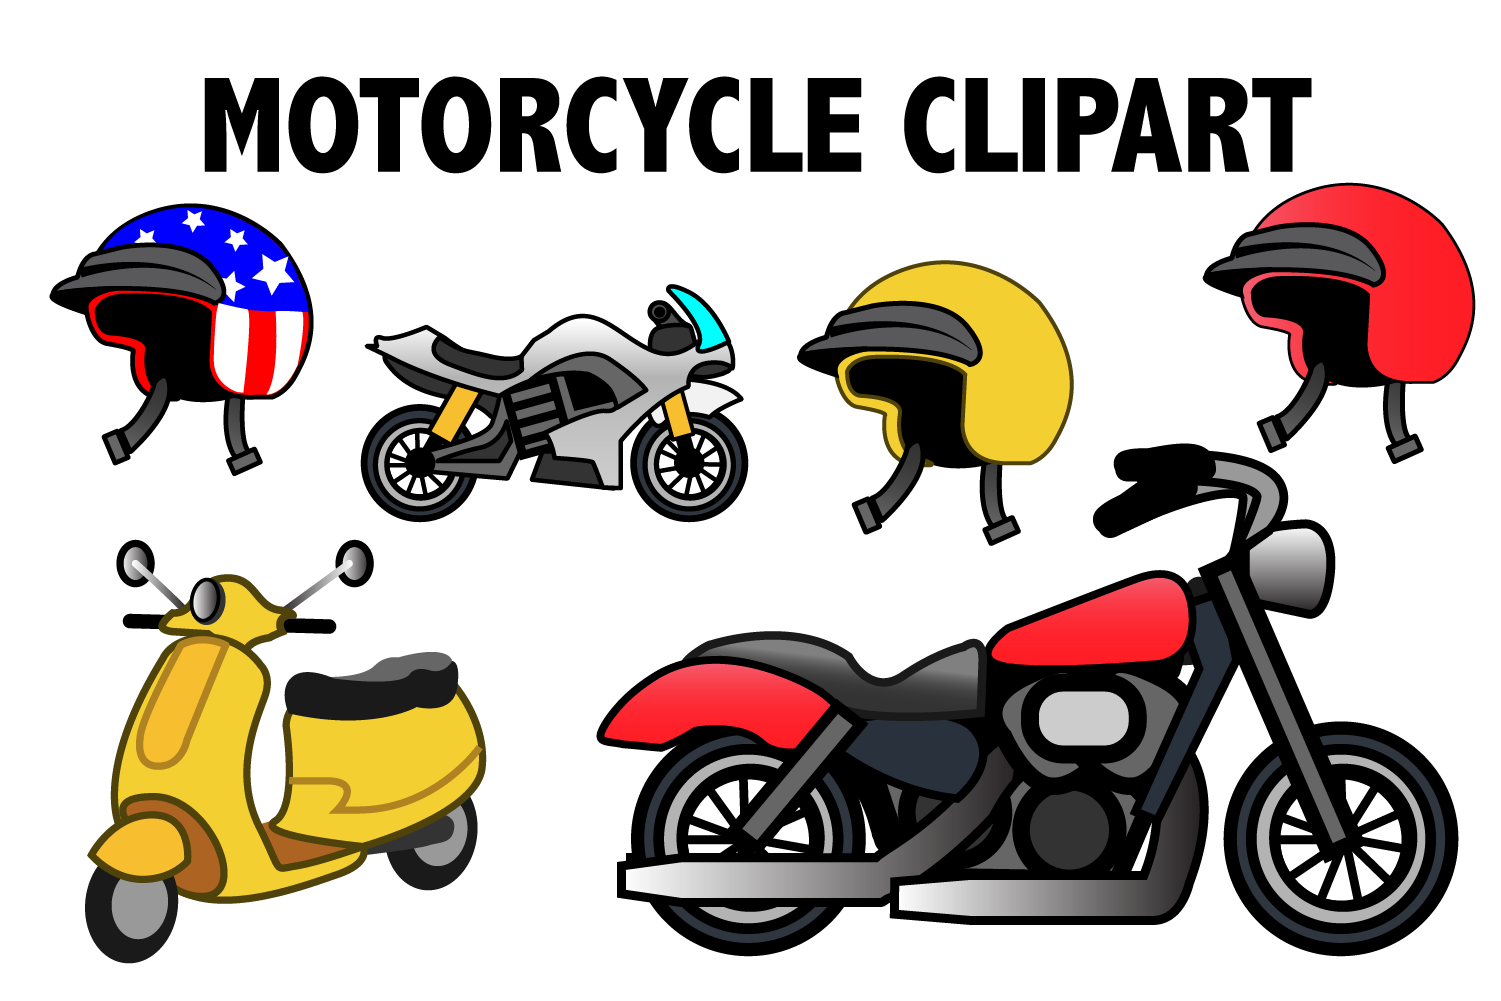 Motorcycle Clipart example image 1